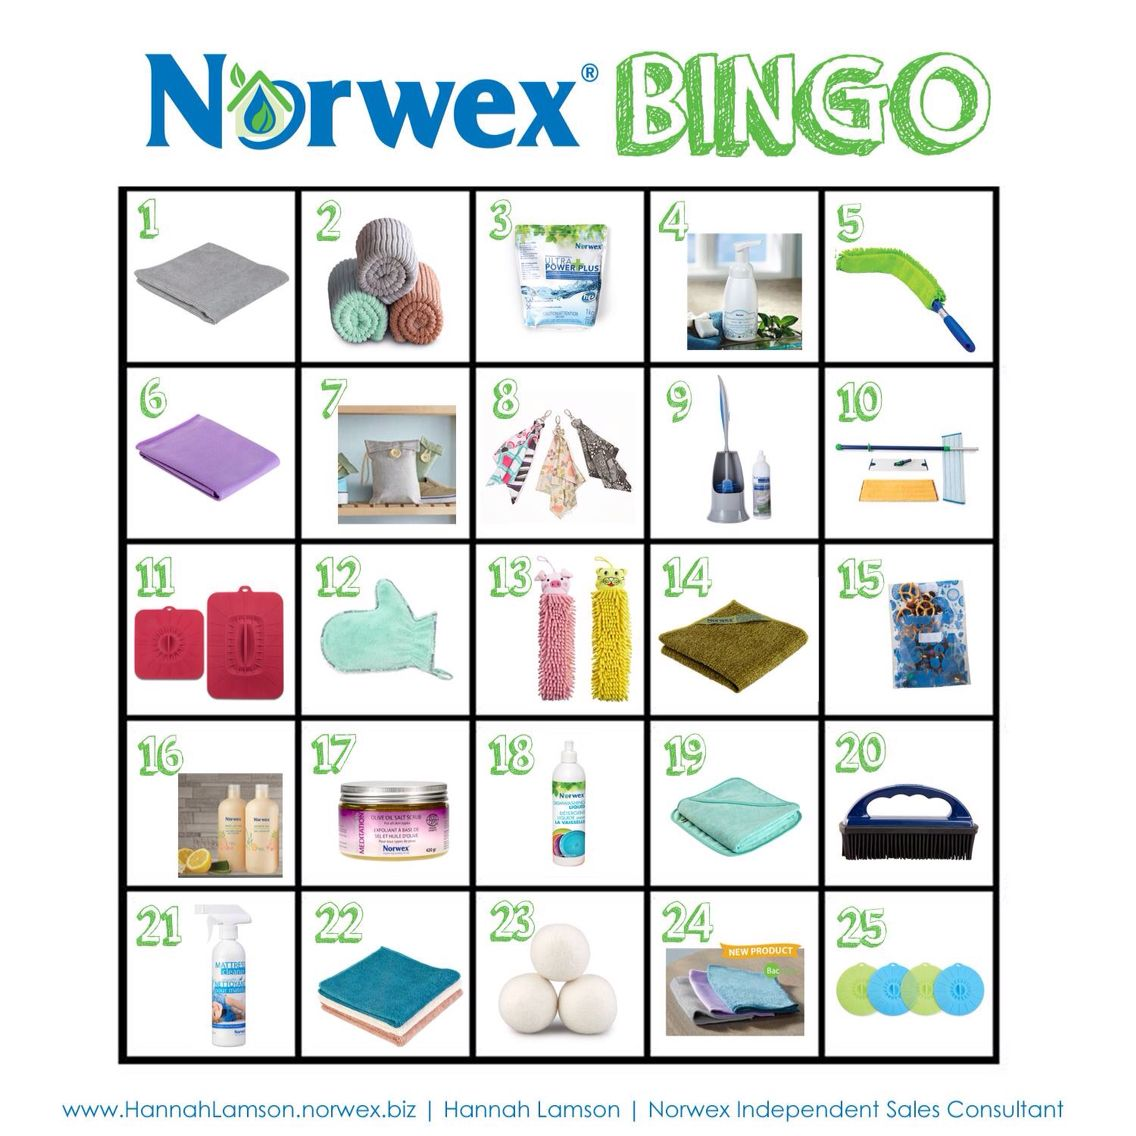 Norwex bingo for parties Norwex, Norwex party, Norwex